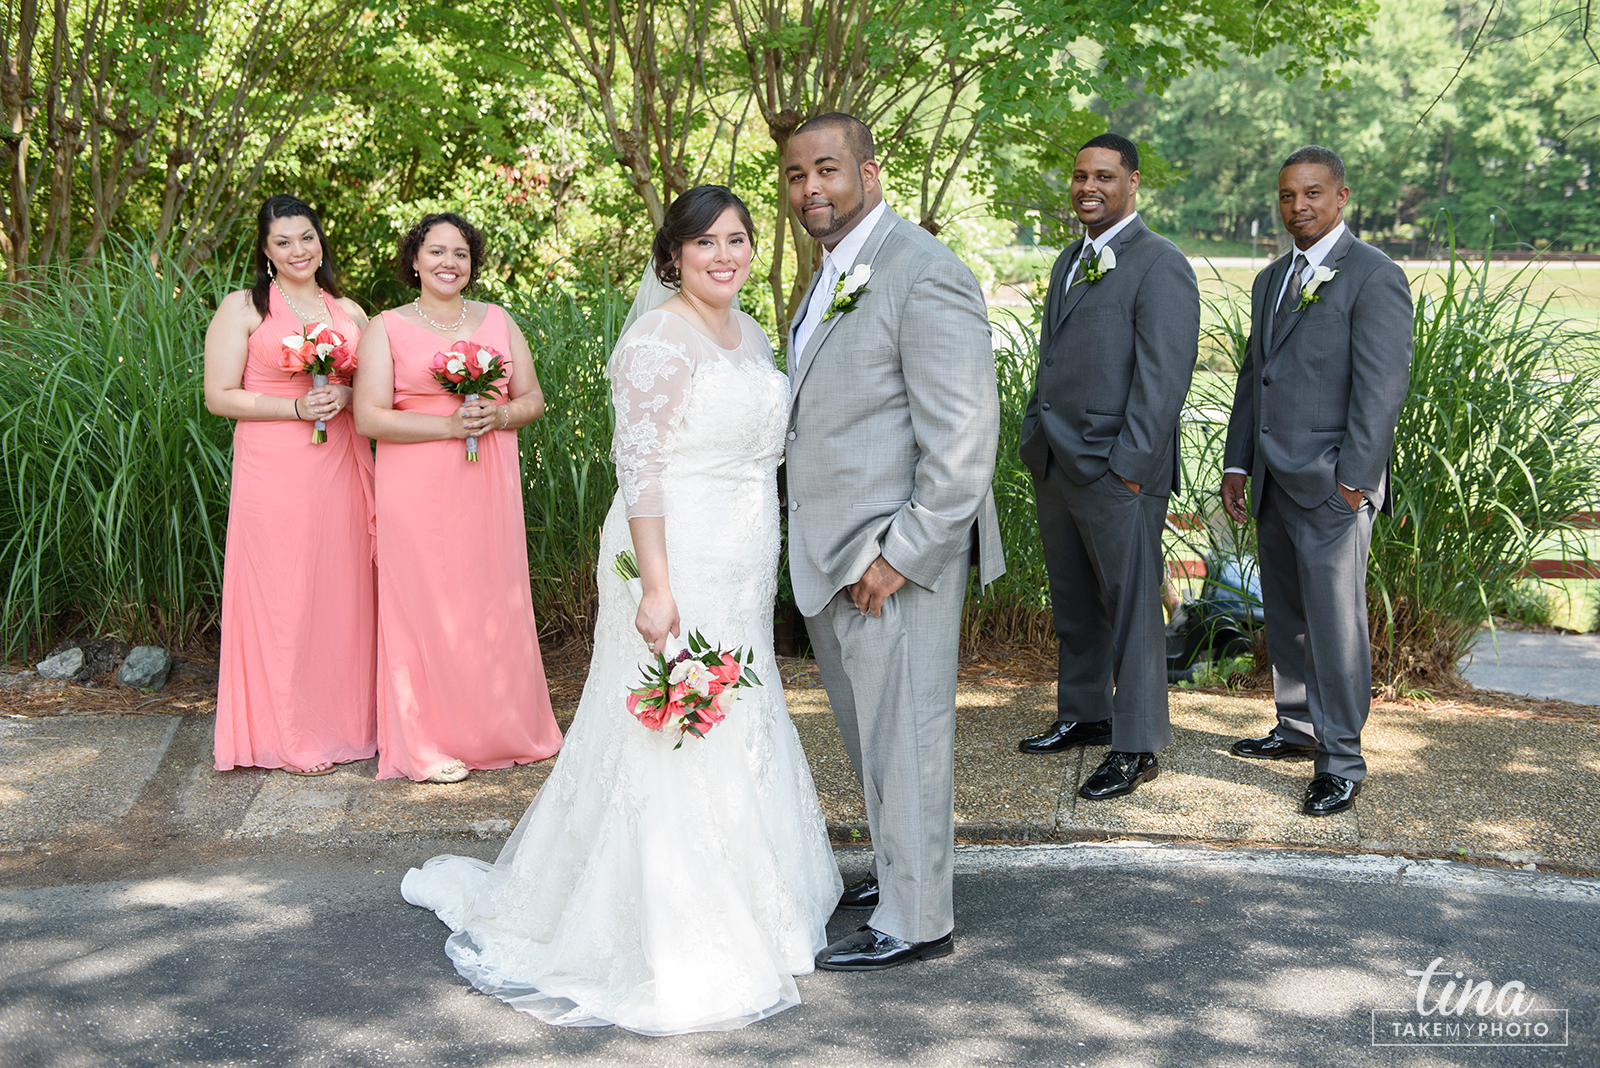 wedding-photographer-bridal-party-portrait-summer-brandermill-country-club-virginia-pink-grey